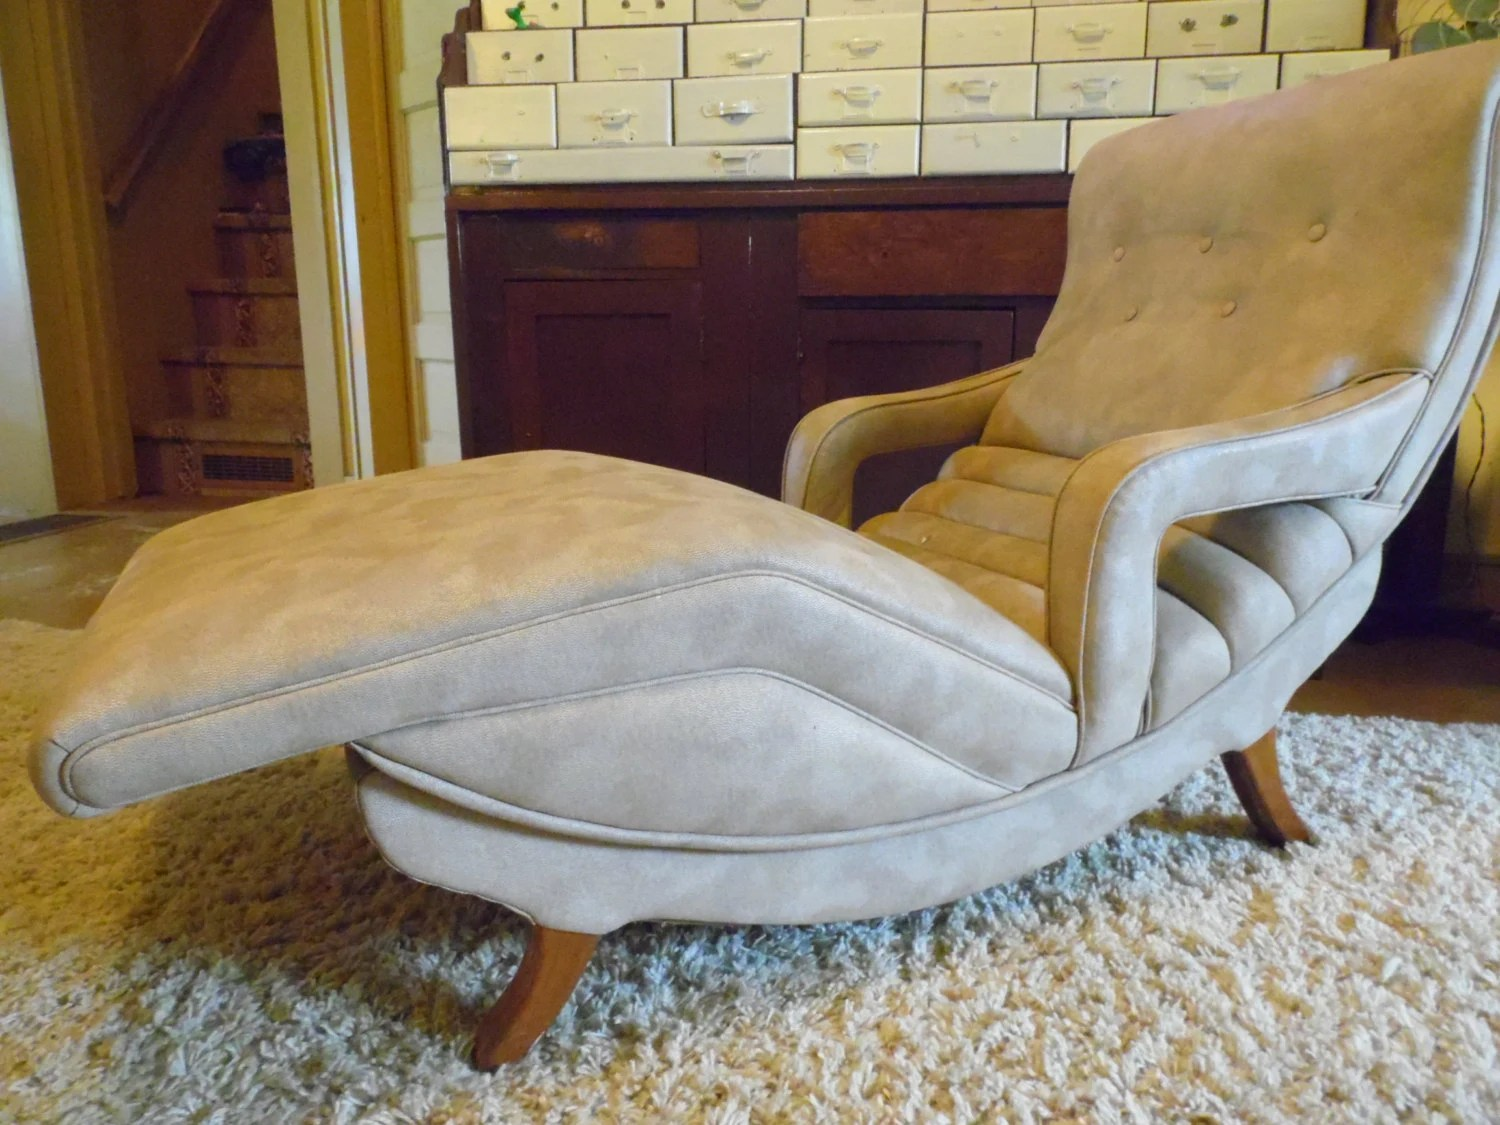 Contour Chair Lounge Contour Chair Contour Chaise Lounge Chair Mid Century Chair